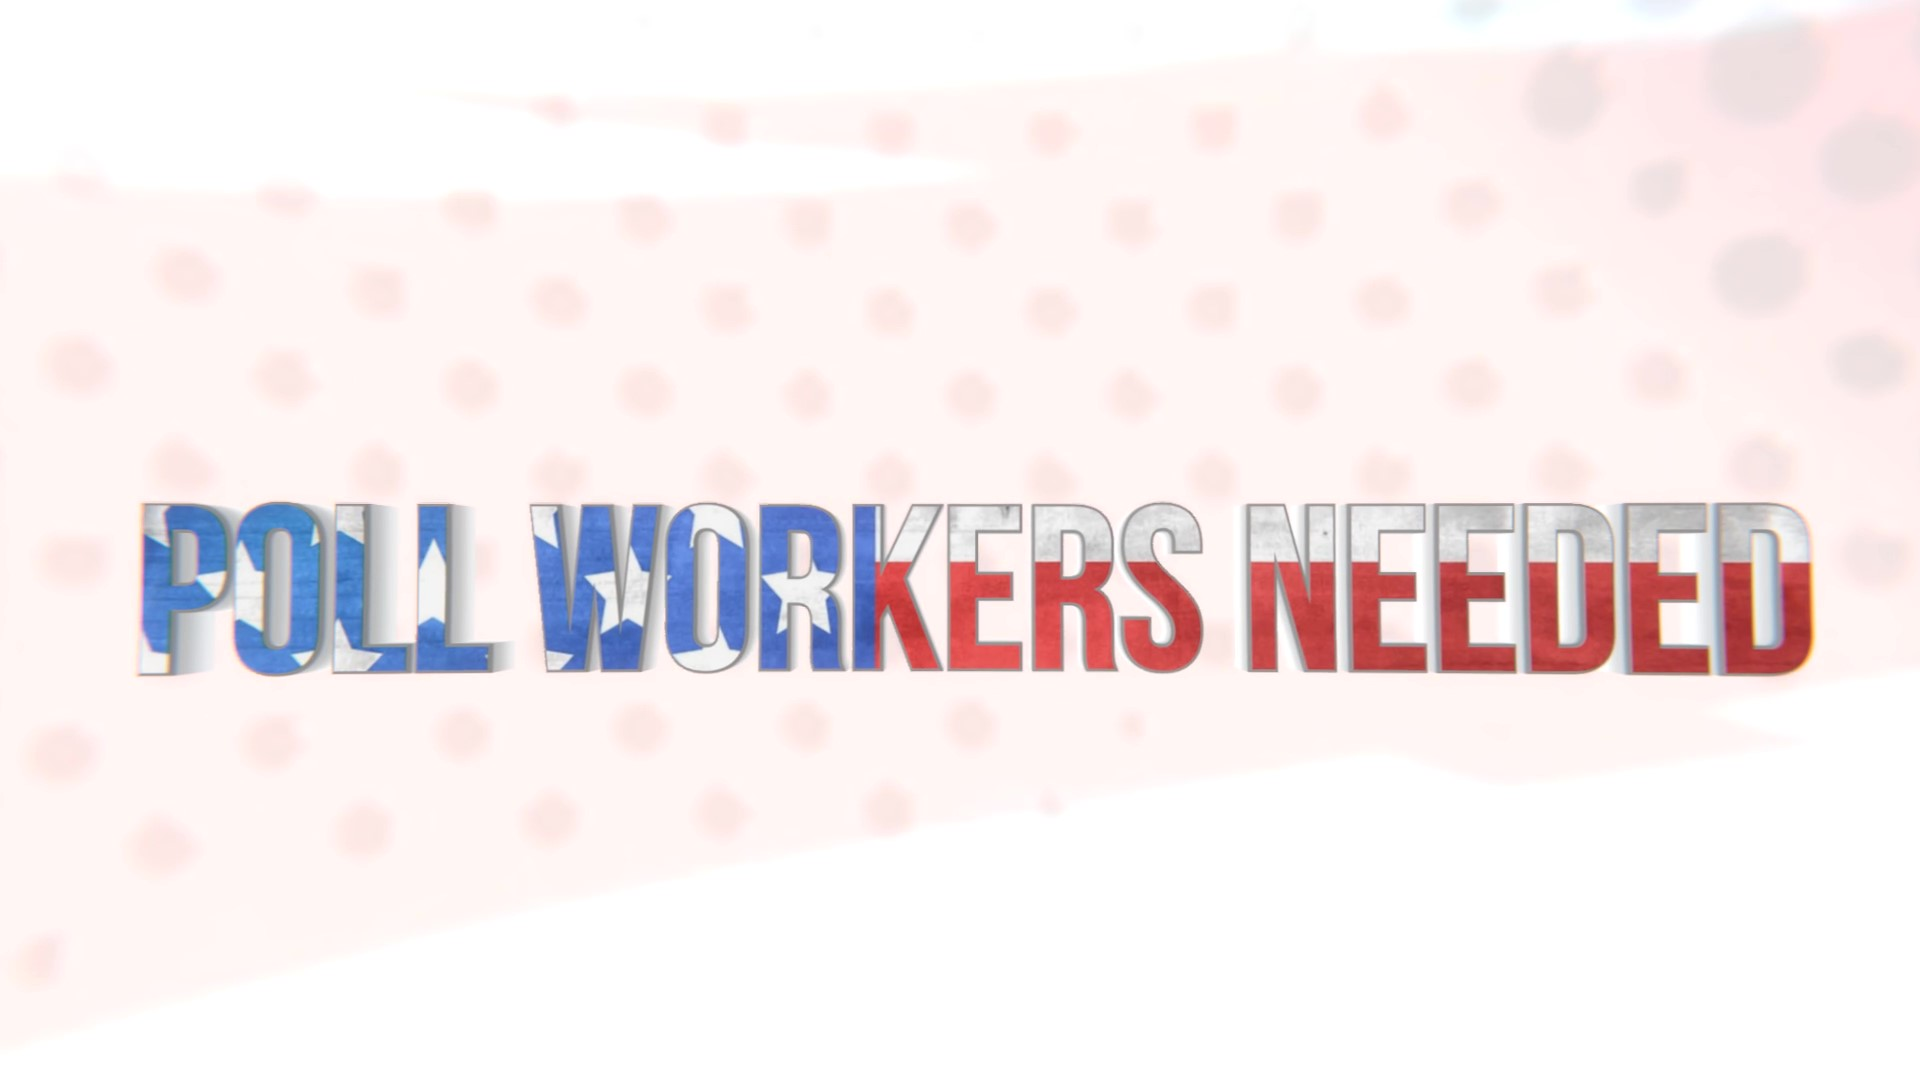 Poll Workers Needed